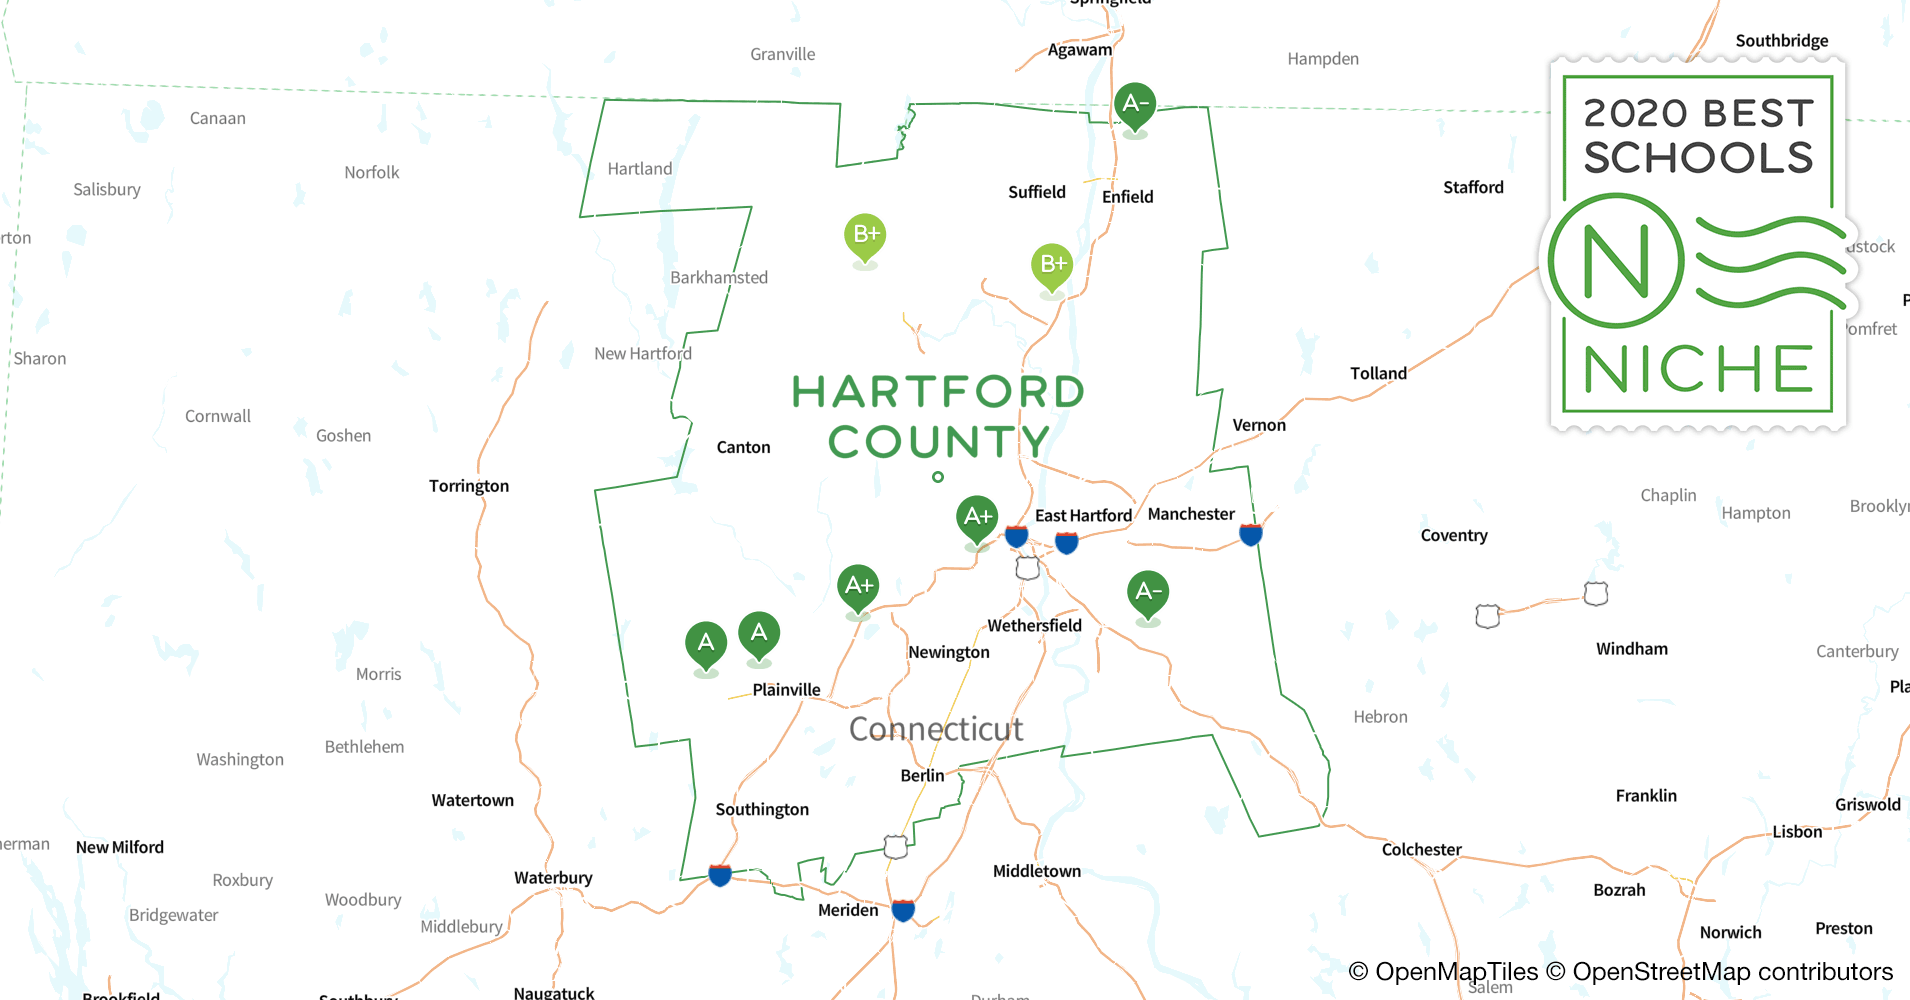 Districts in Hartford County, CT - Niche on newport county ct map, falls village map, franklin county ct map, harrison county ms map, east hartford ct map, tolland county ct map, litchfield county ct map, essex county ma map, windham county ct map, middlesex county ma map, santa barbara county map map, york county me map, new milford map, putnam county ny map, saint louis county mo map, dane county wisconsin map, westchester county ct map, middlesex county nj map, middlesex county ct map, city of hartford ct map,